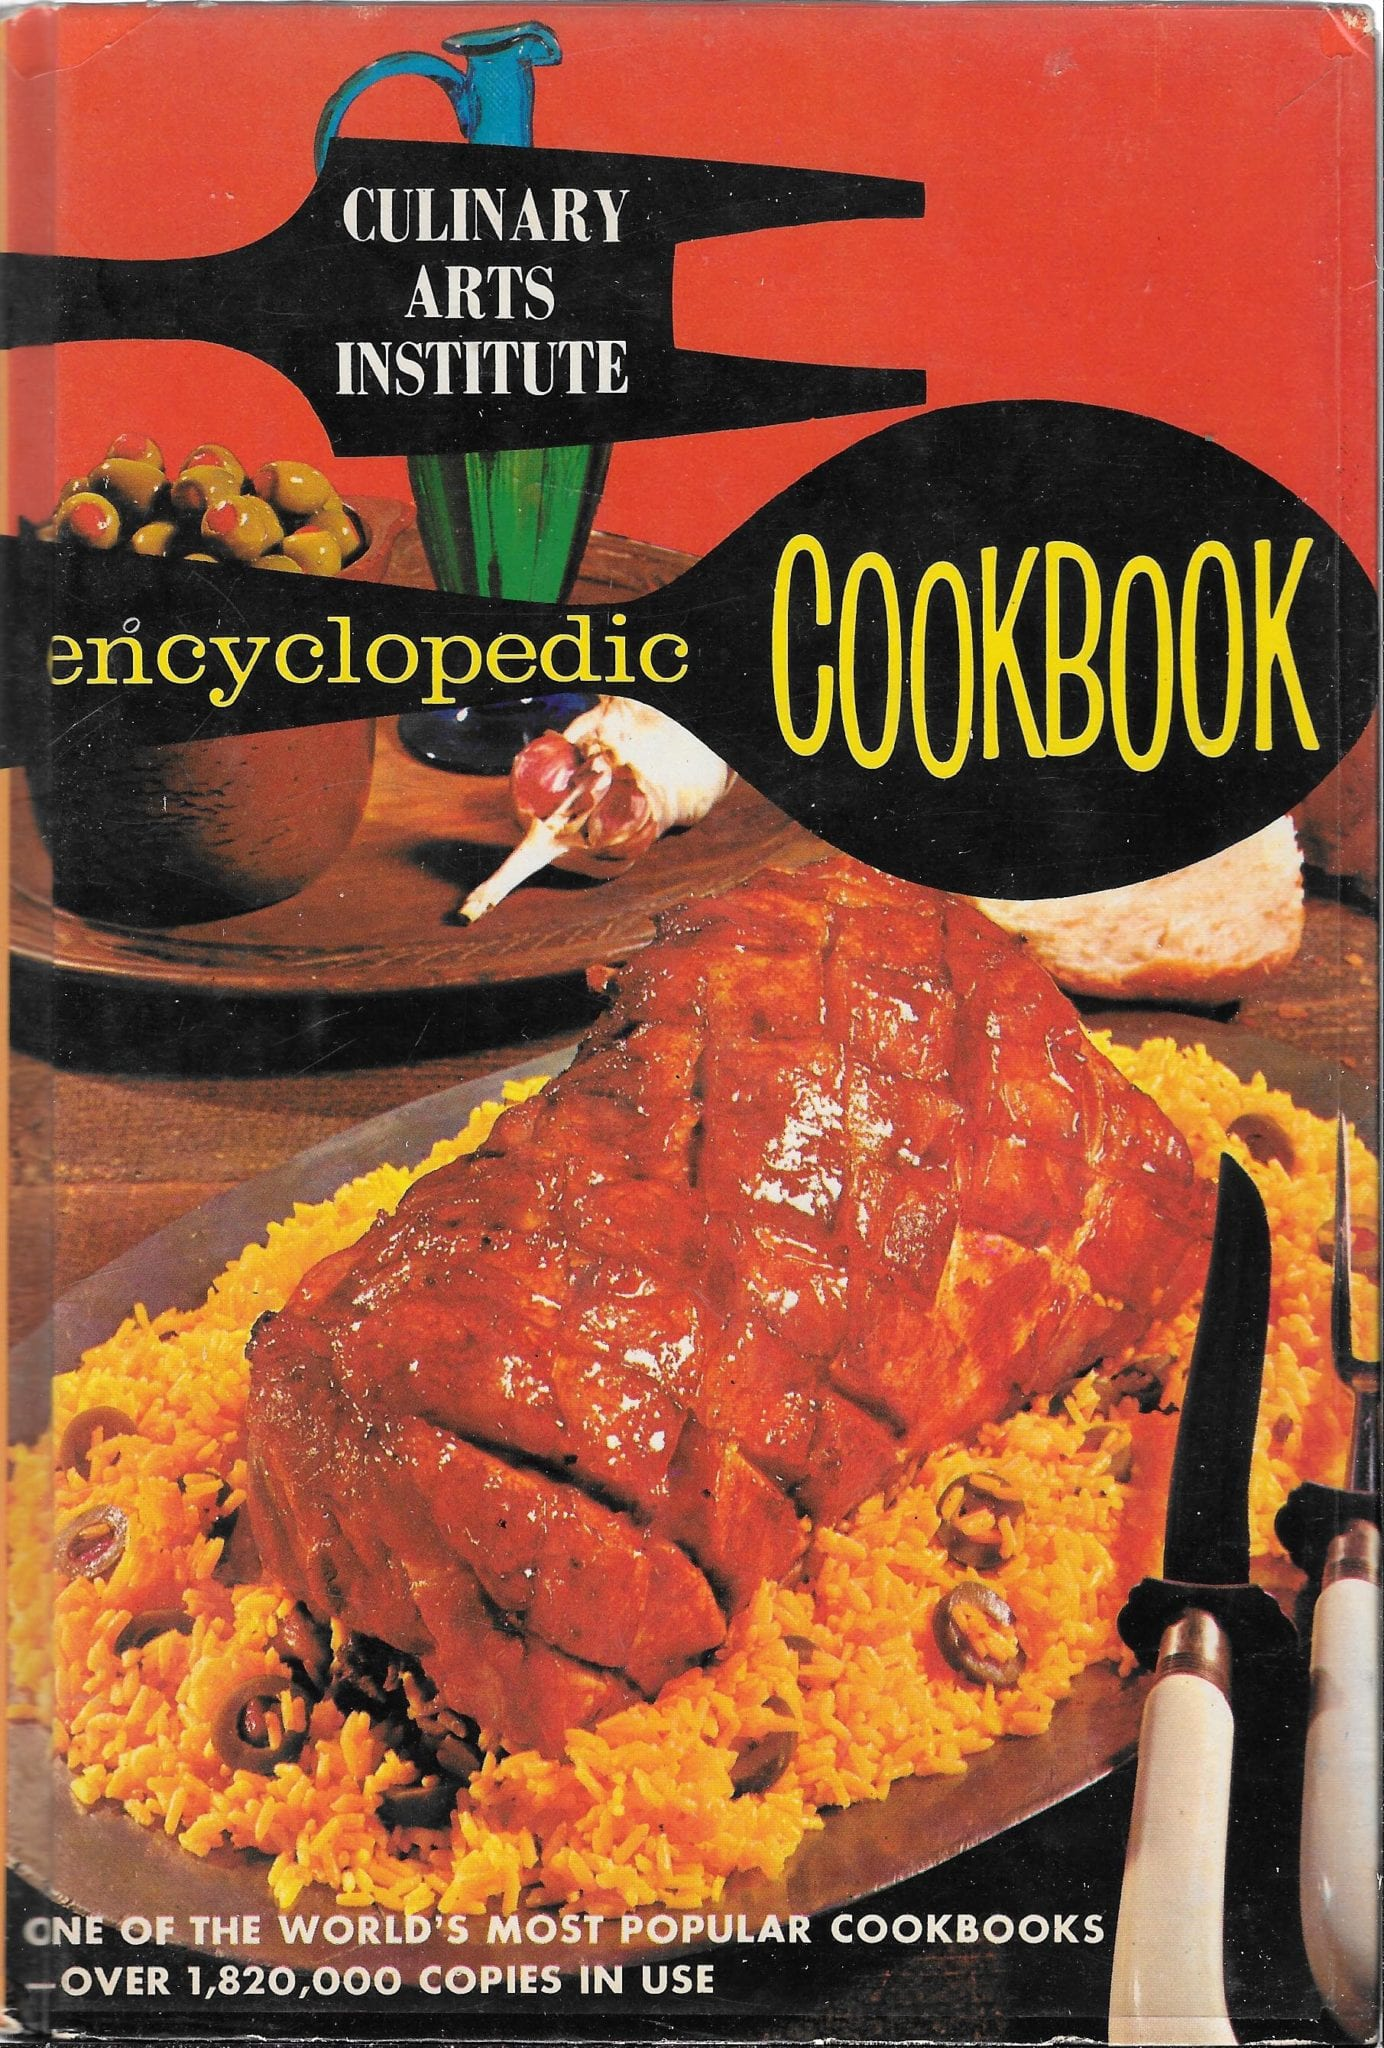 Vintage Cookbook >> Culinary Arts Institute Encyclopedic Cookbook, 1976: Mint condition!